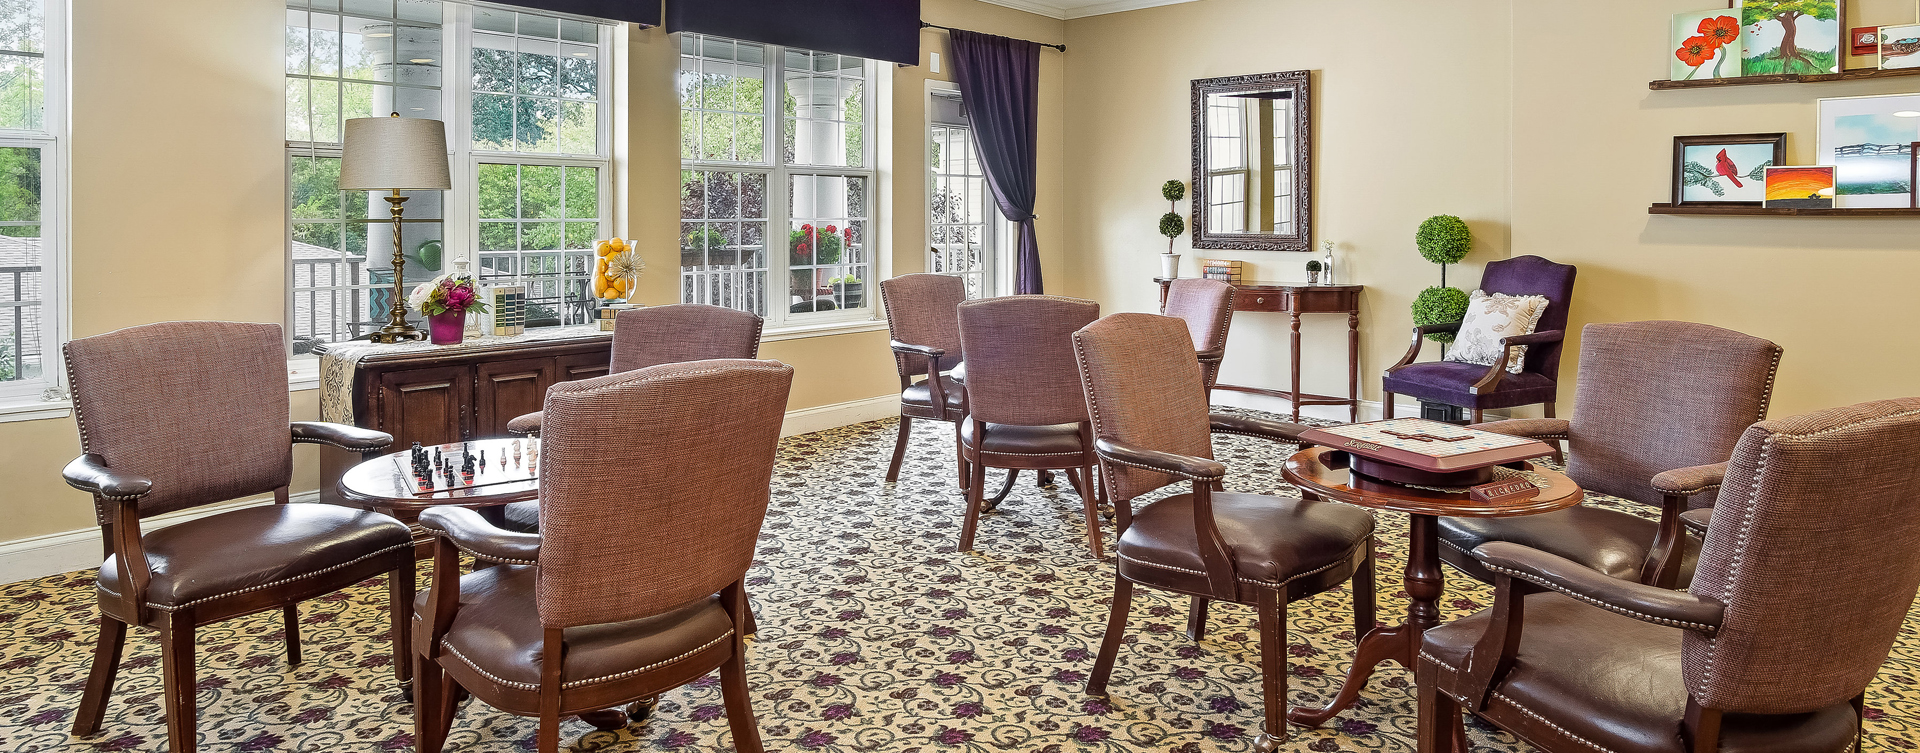 Enjoy a good card game with friends in the activity room at Bickford of Overland Park